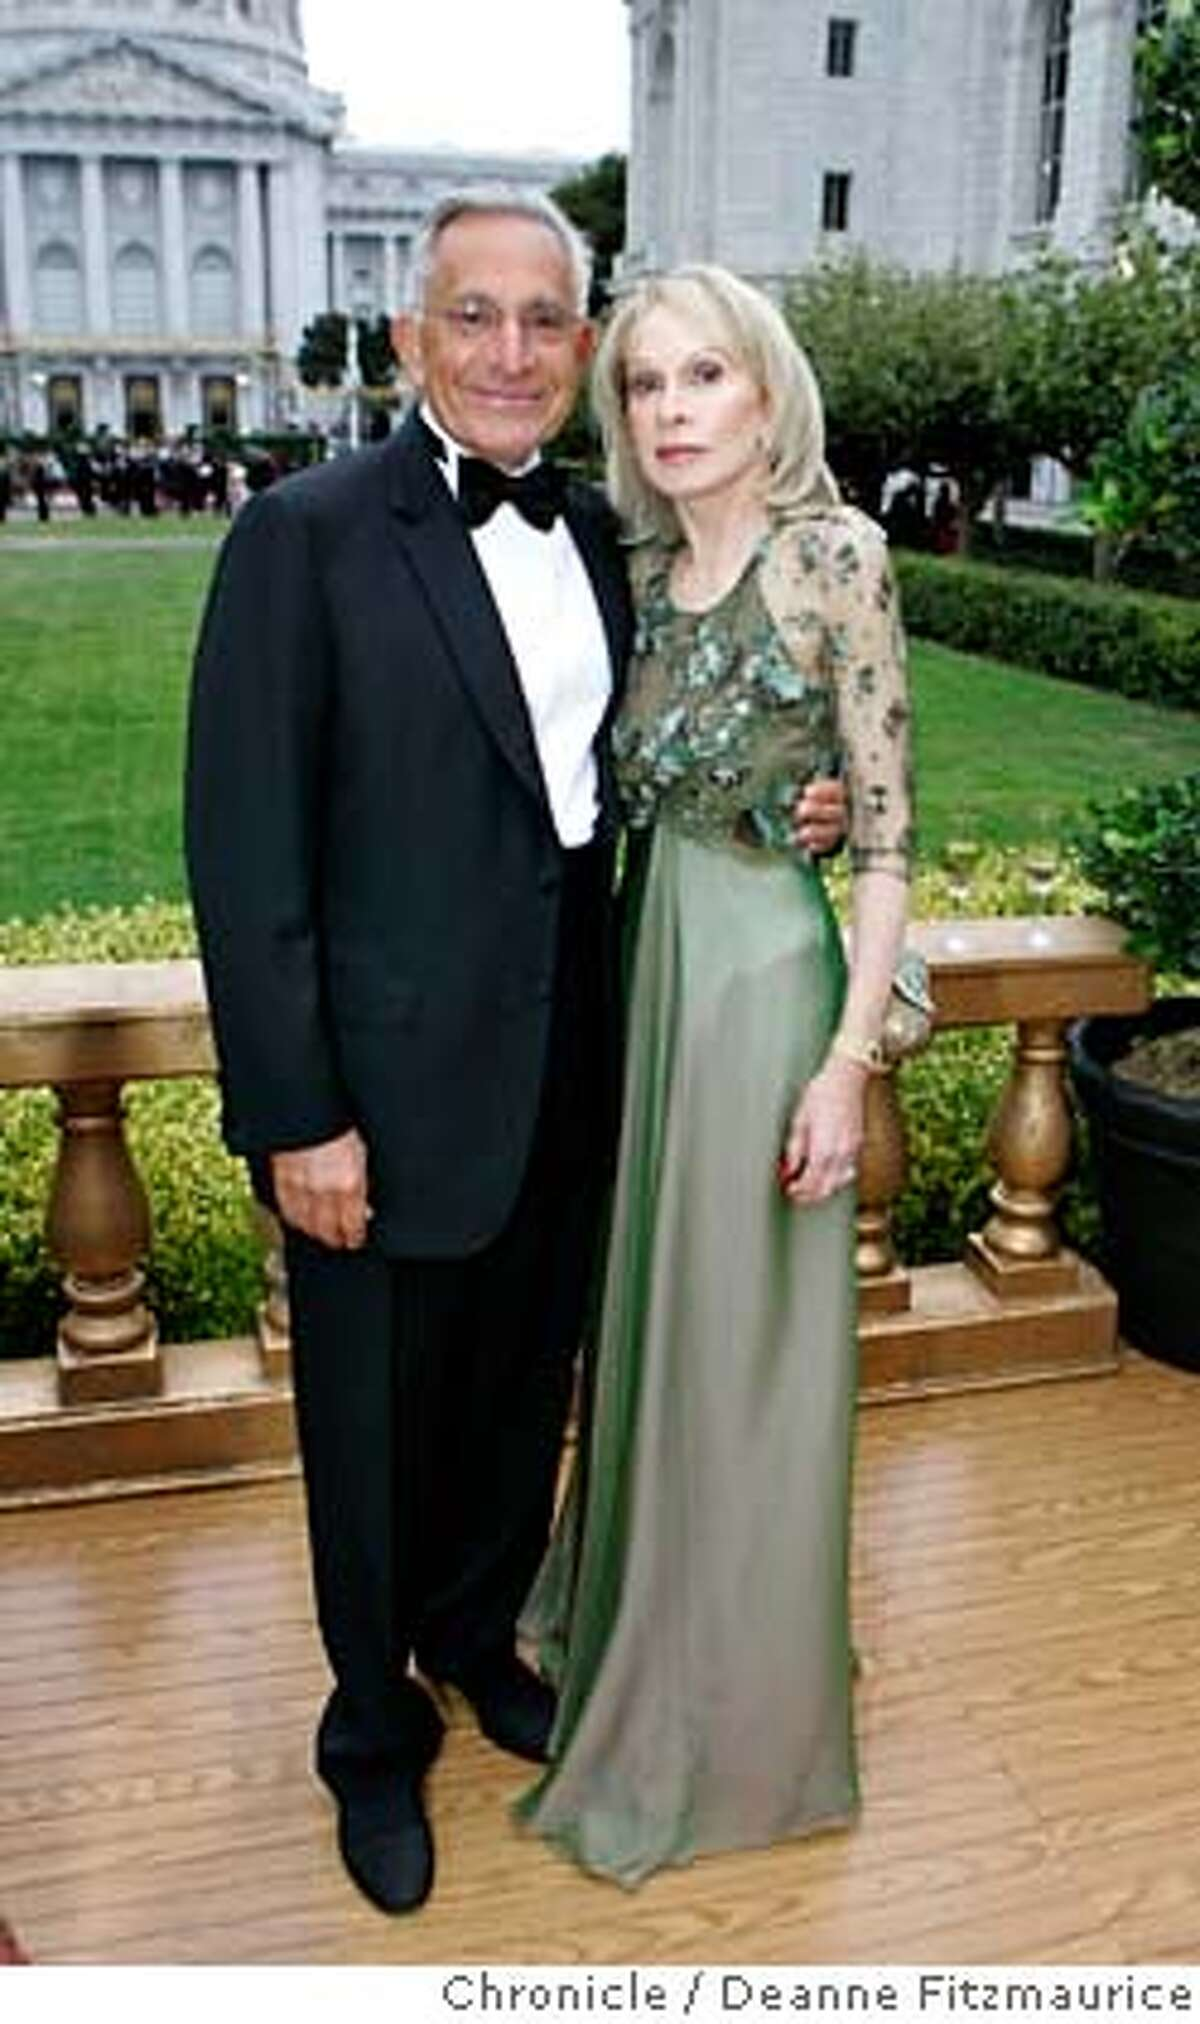 opera_0006_df.jpg Gala chairwoman Judith Renard and her husband, John, pose as they arrive for the party before the Opera. Judith is wearing a moss green peau de soie silk and iridescent silk chiffon gown by Bill Blass. Opening of the San Francisco Opera season. Photographed in San Francisco on 9/8/06. (Deanne Fitzmaurice/ The Chronicle) Mandatory credit for photographer and San Francisco Chronicle. /Magazines out.